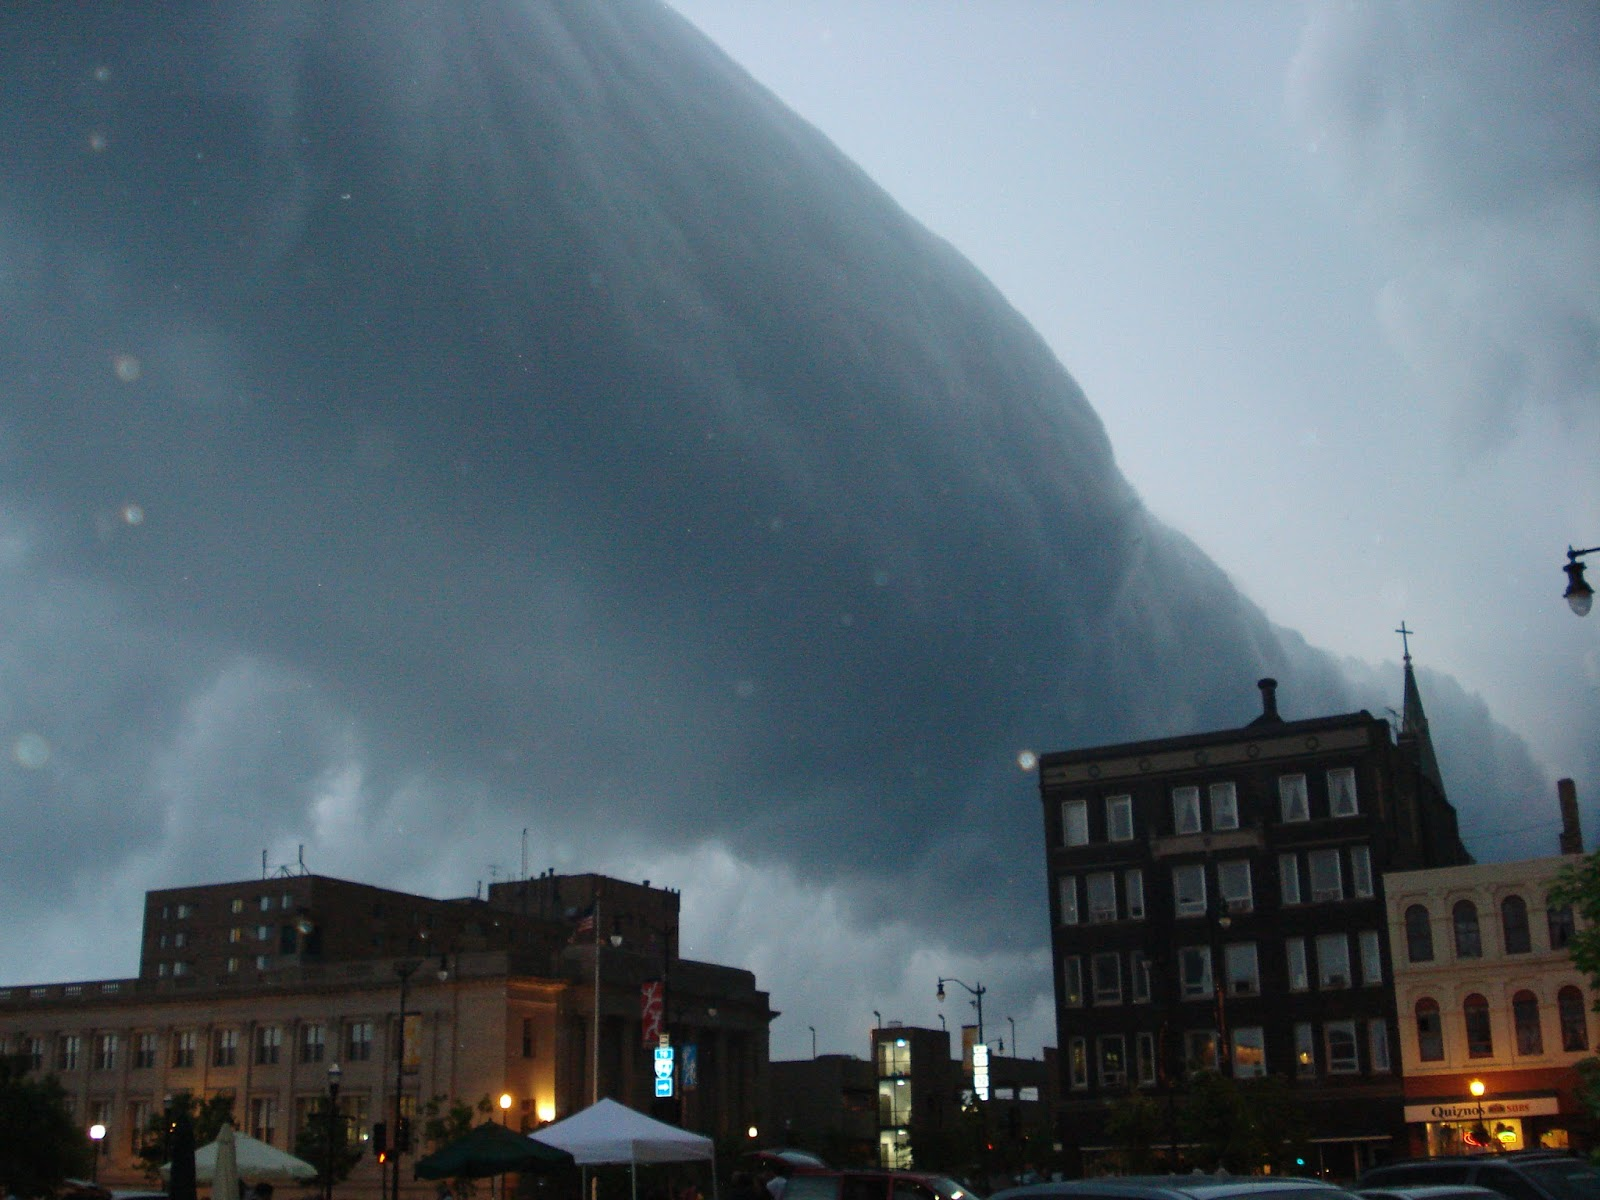 A roll cloud over downtown Racine, WI. Taken 1 June 2007. Retrieved from Wikimedia Commons